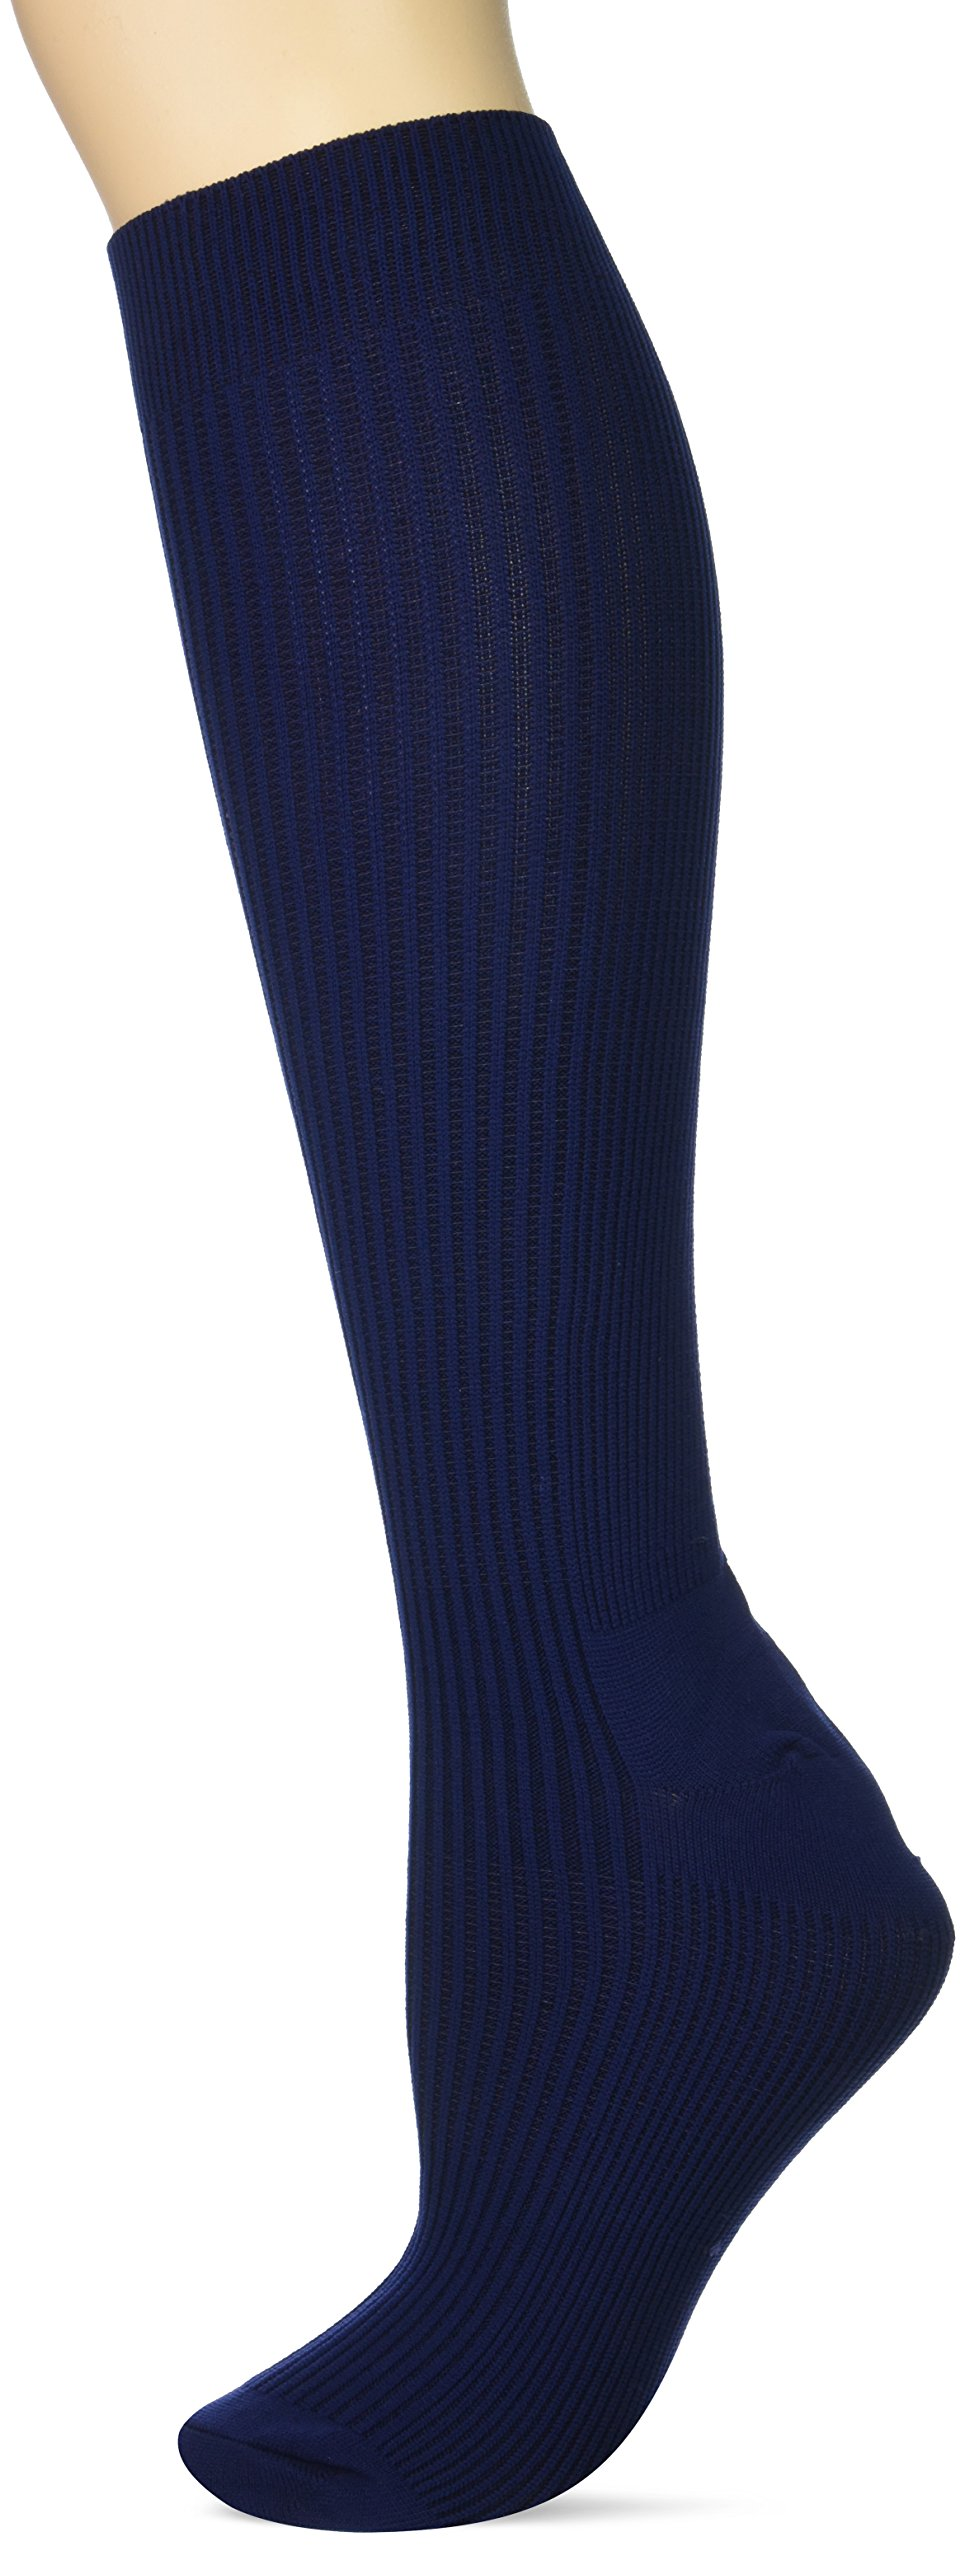 Lovely Med Peds Compression Stockings